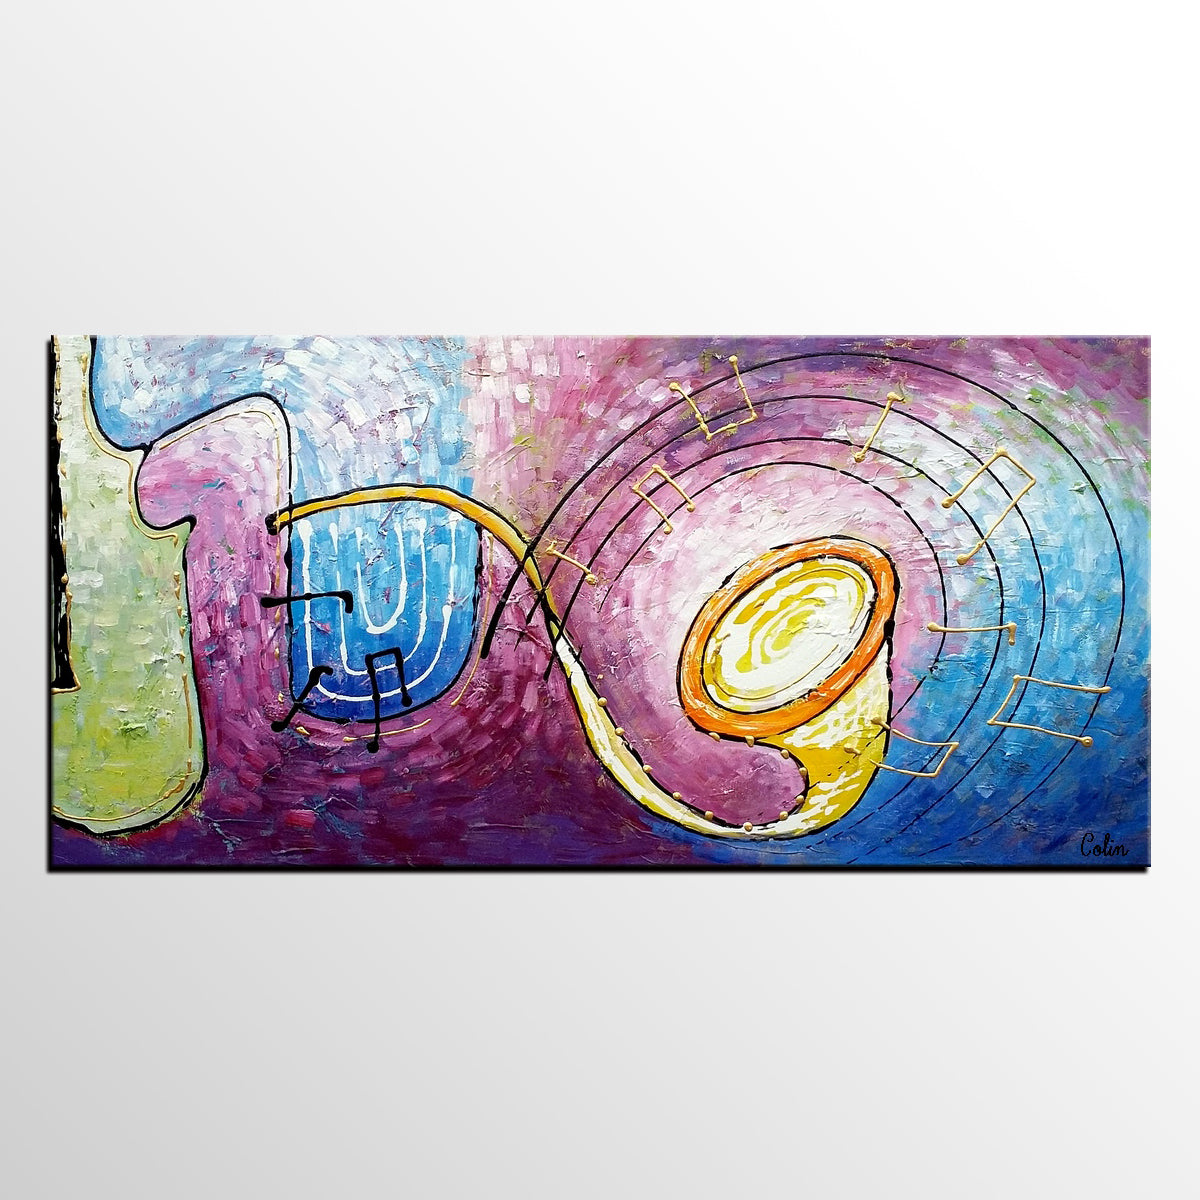 Music Painting, Abstract Art, Bedroom Wall Art, Art Painting, Canvas Art, Oil Painting, Abstract Painting, Large Art, Canvas Painting - artworkcanvas